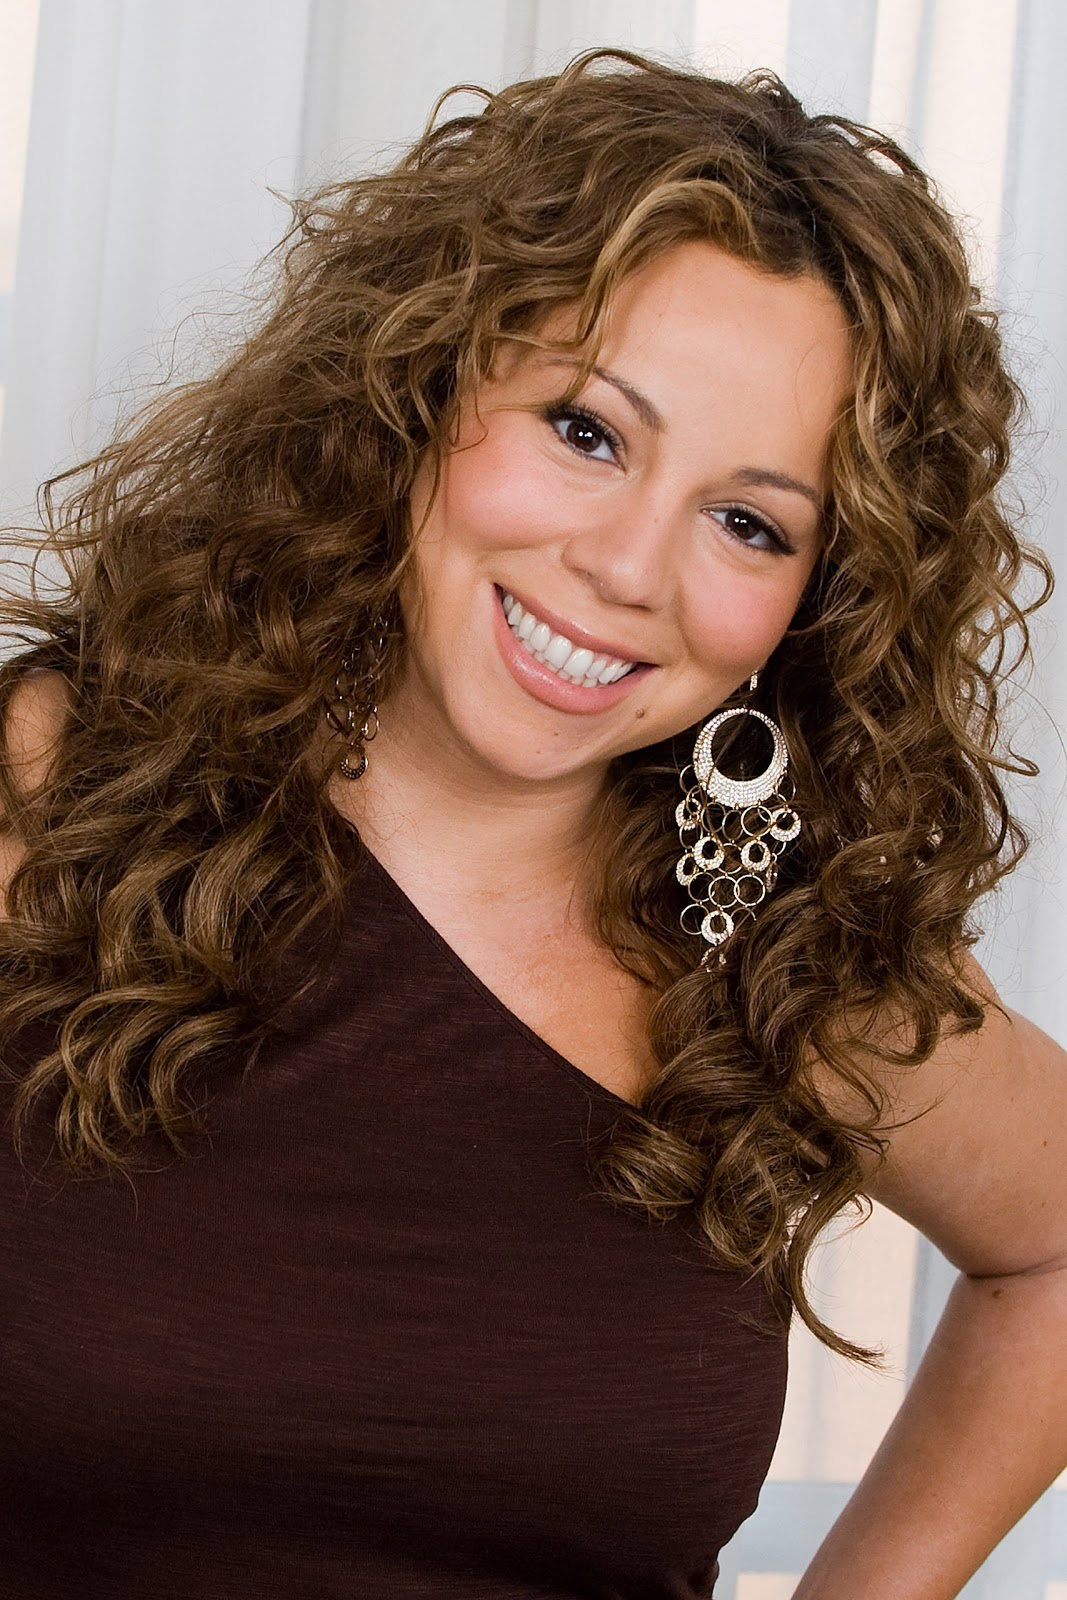 http://4.bp.blogspot.com/-48-qFk_09xY/UBbtsuDlV9I/AAAAAAAAFJk/gVQLFBKktgk/s1600/Mariah-Carey-hairstyles-celebrity-actress-singer-wallpaper-songwriter-carey-mariah%20(1).jpg